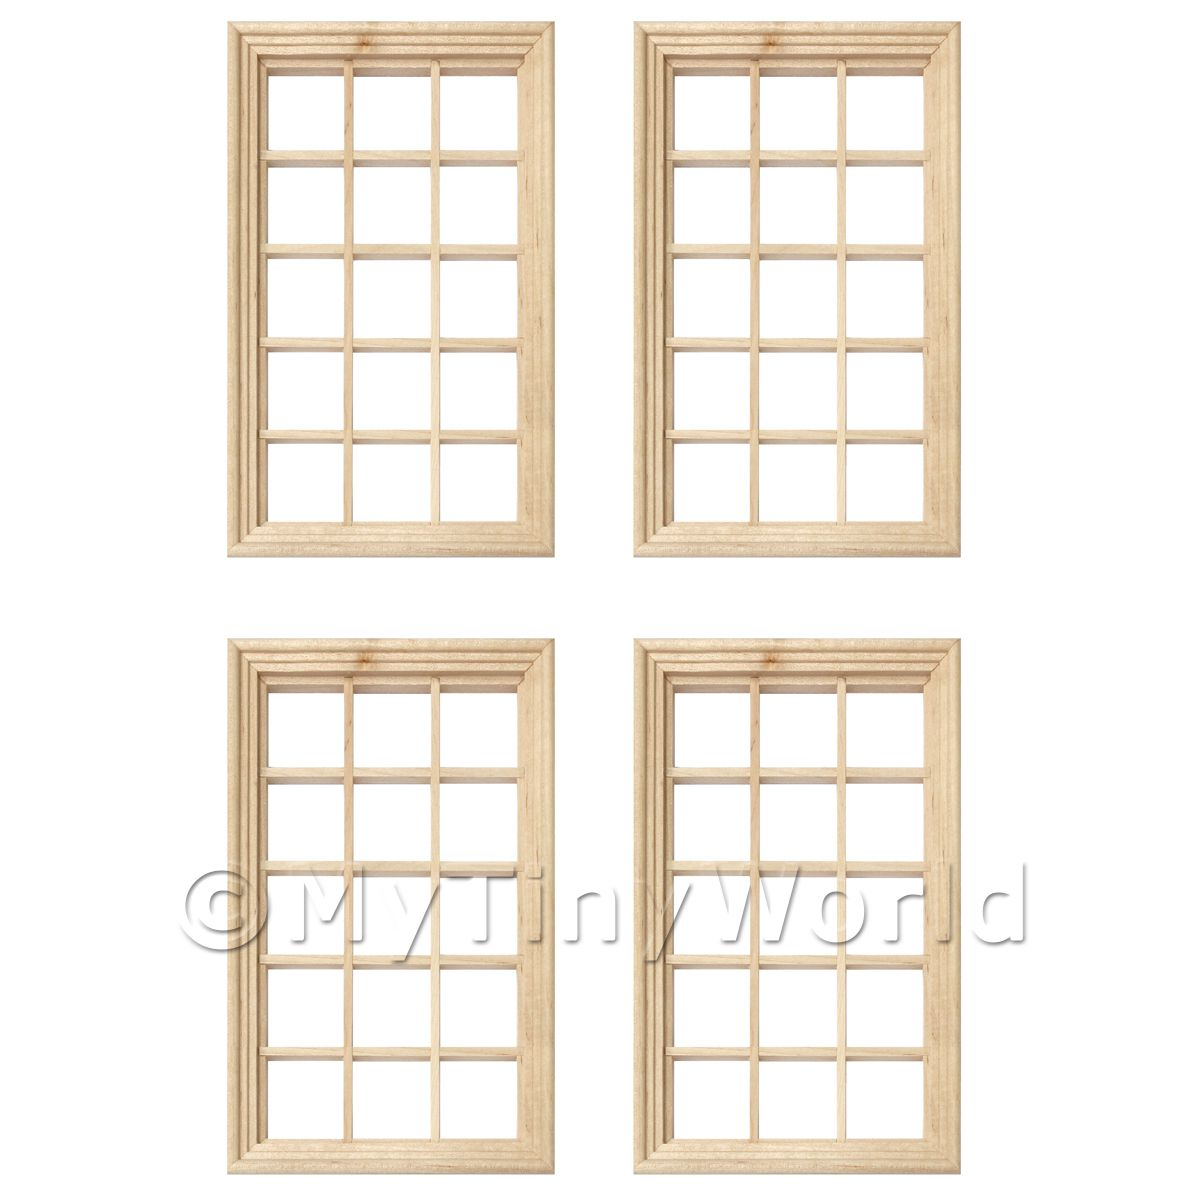 4 x Dolls House Miniature 15 Pane Georgian Windows And Glazing